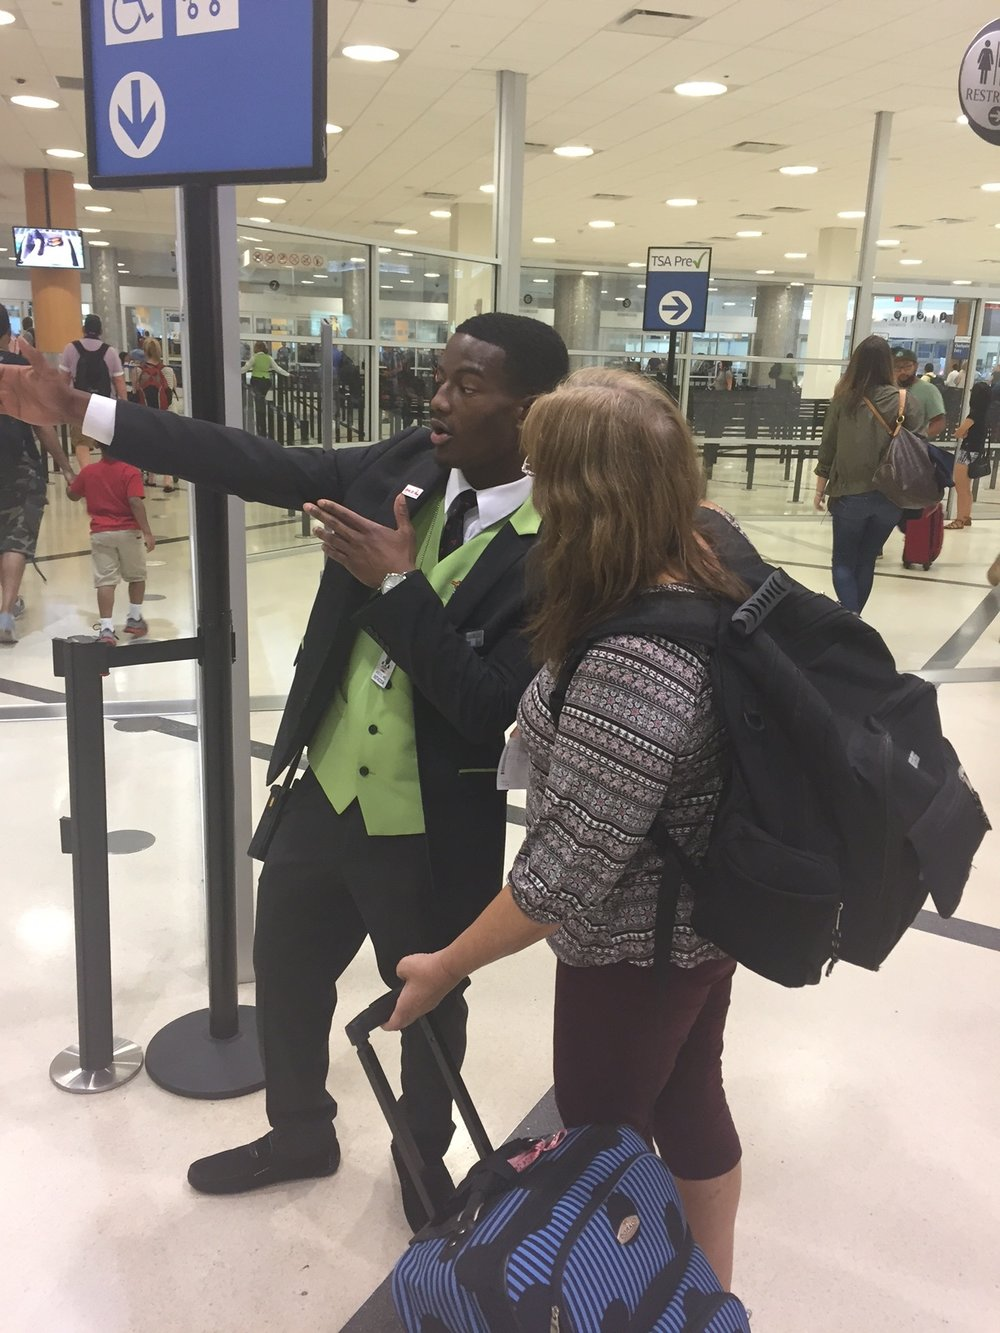 For help at the Atlanta Airport, ask an Ambassador in a green vest.